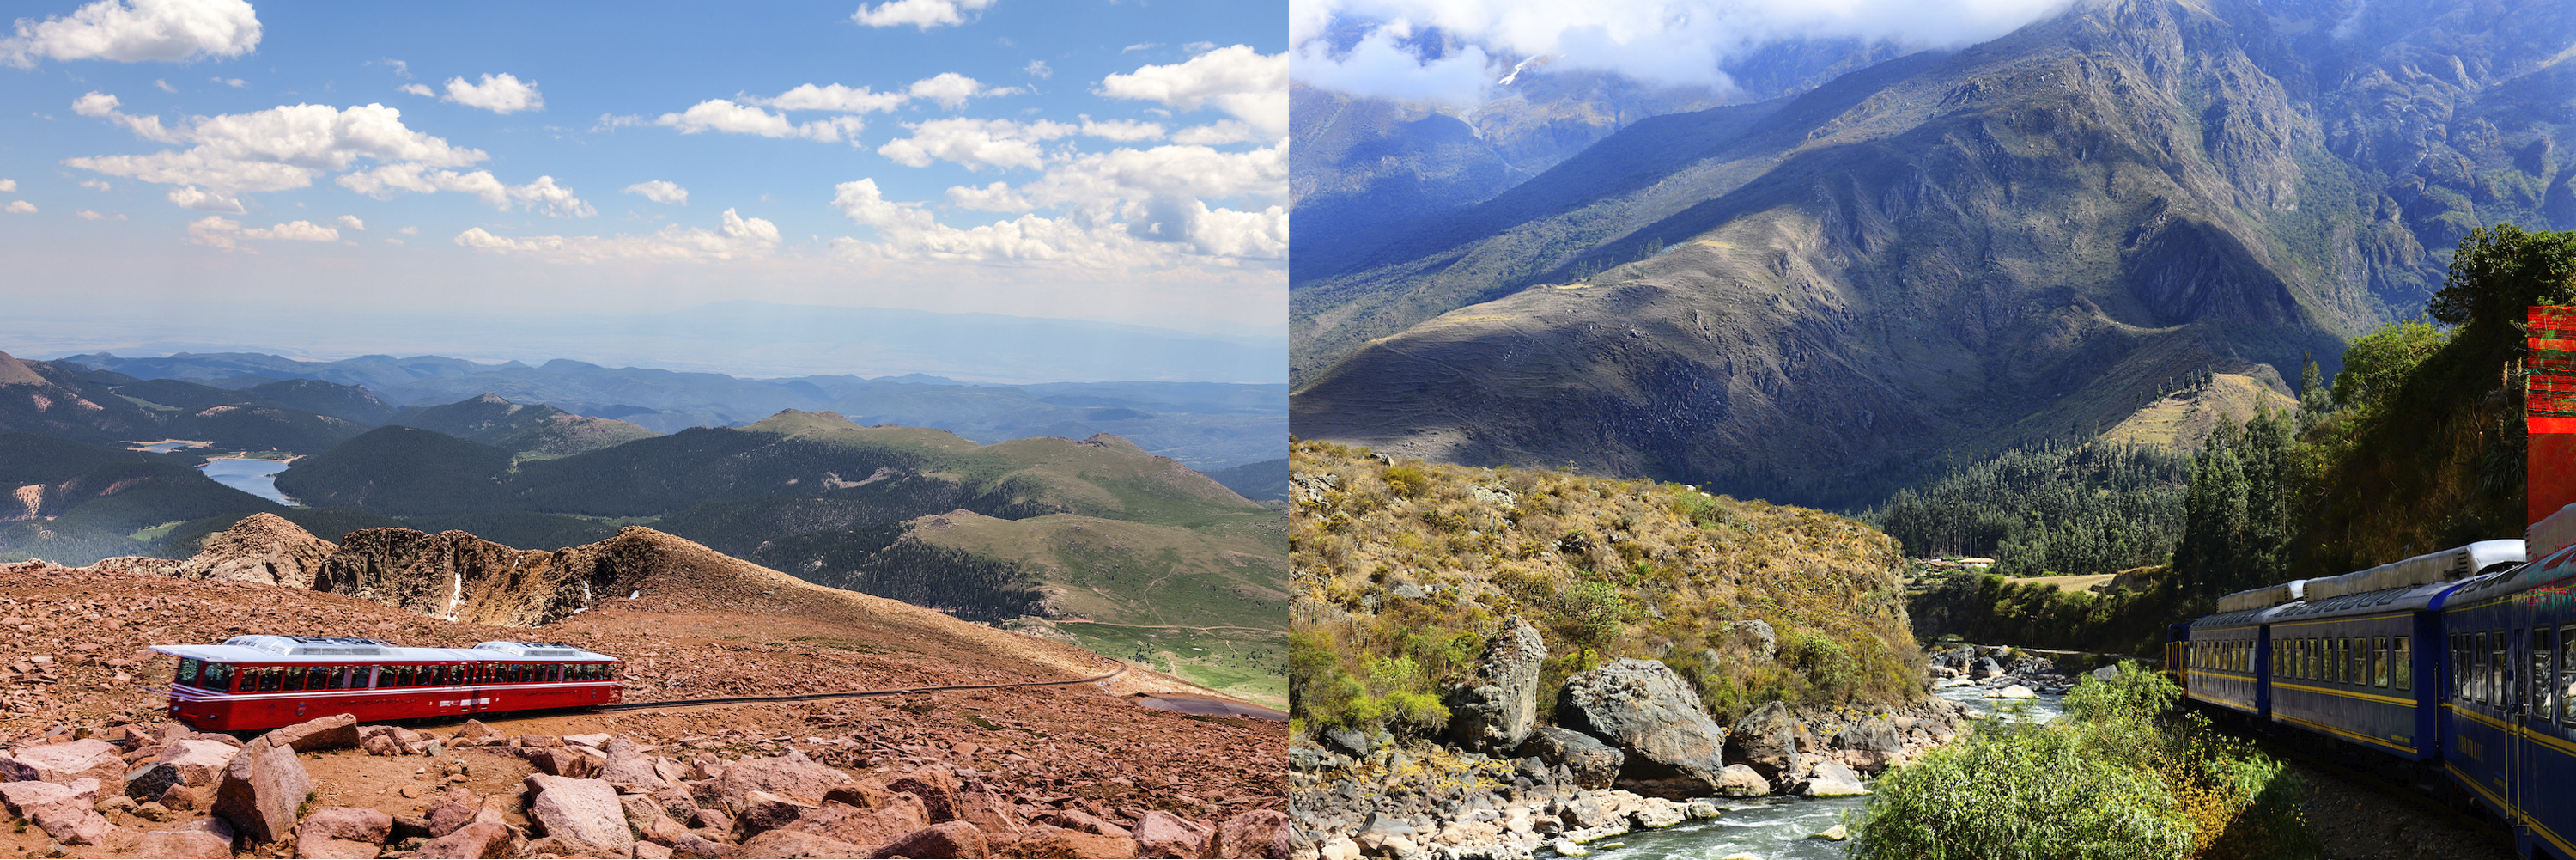 two beautiful shots of pikes peak cog railway view from the peak red mountains blue sky, and peru rail near Machu Picchu with mountains hot humid and a creek